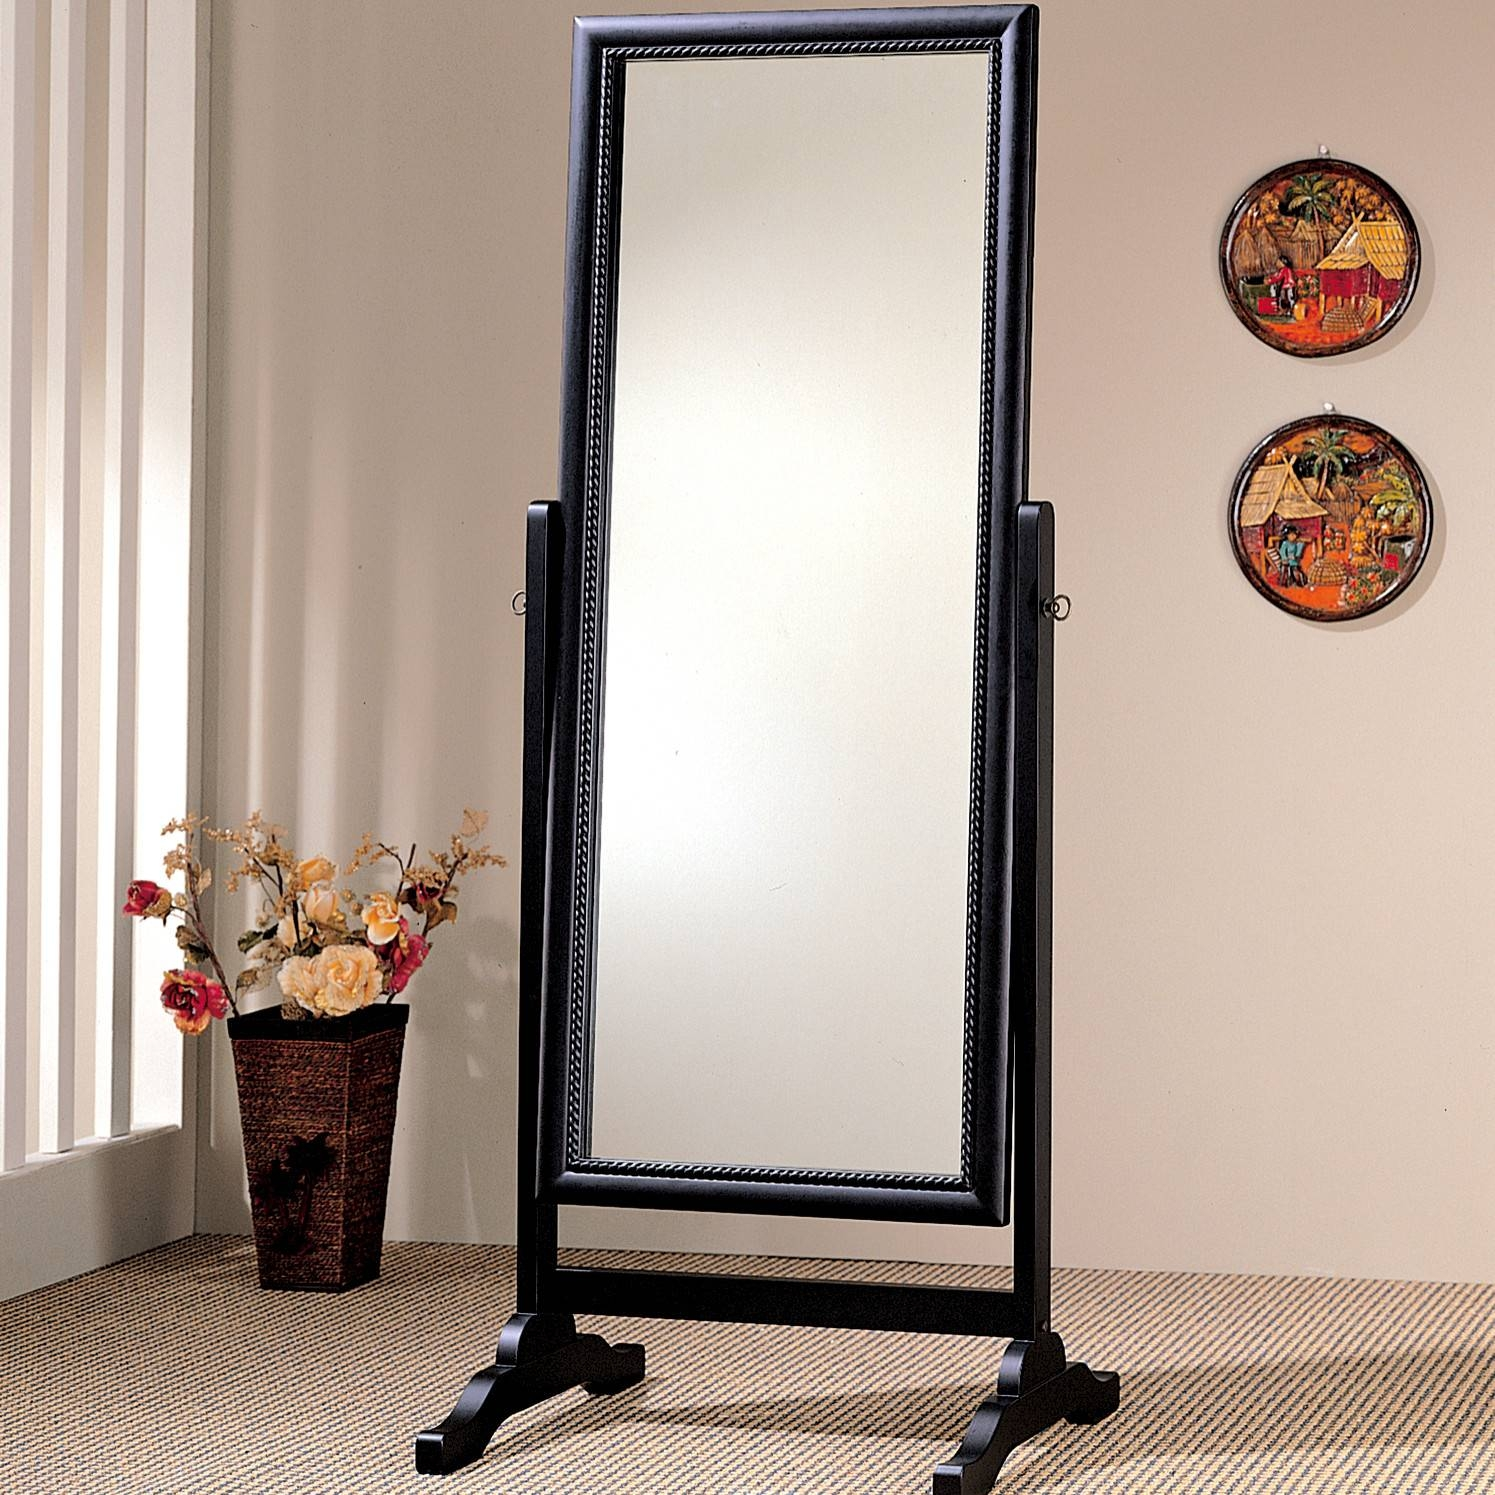 Homeware: Oval Full Length Standing Mirror | Large Floor Mirrors Within Silver Free Standing Mirrors (View 16 of 25)